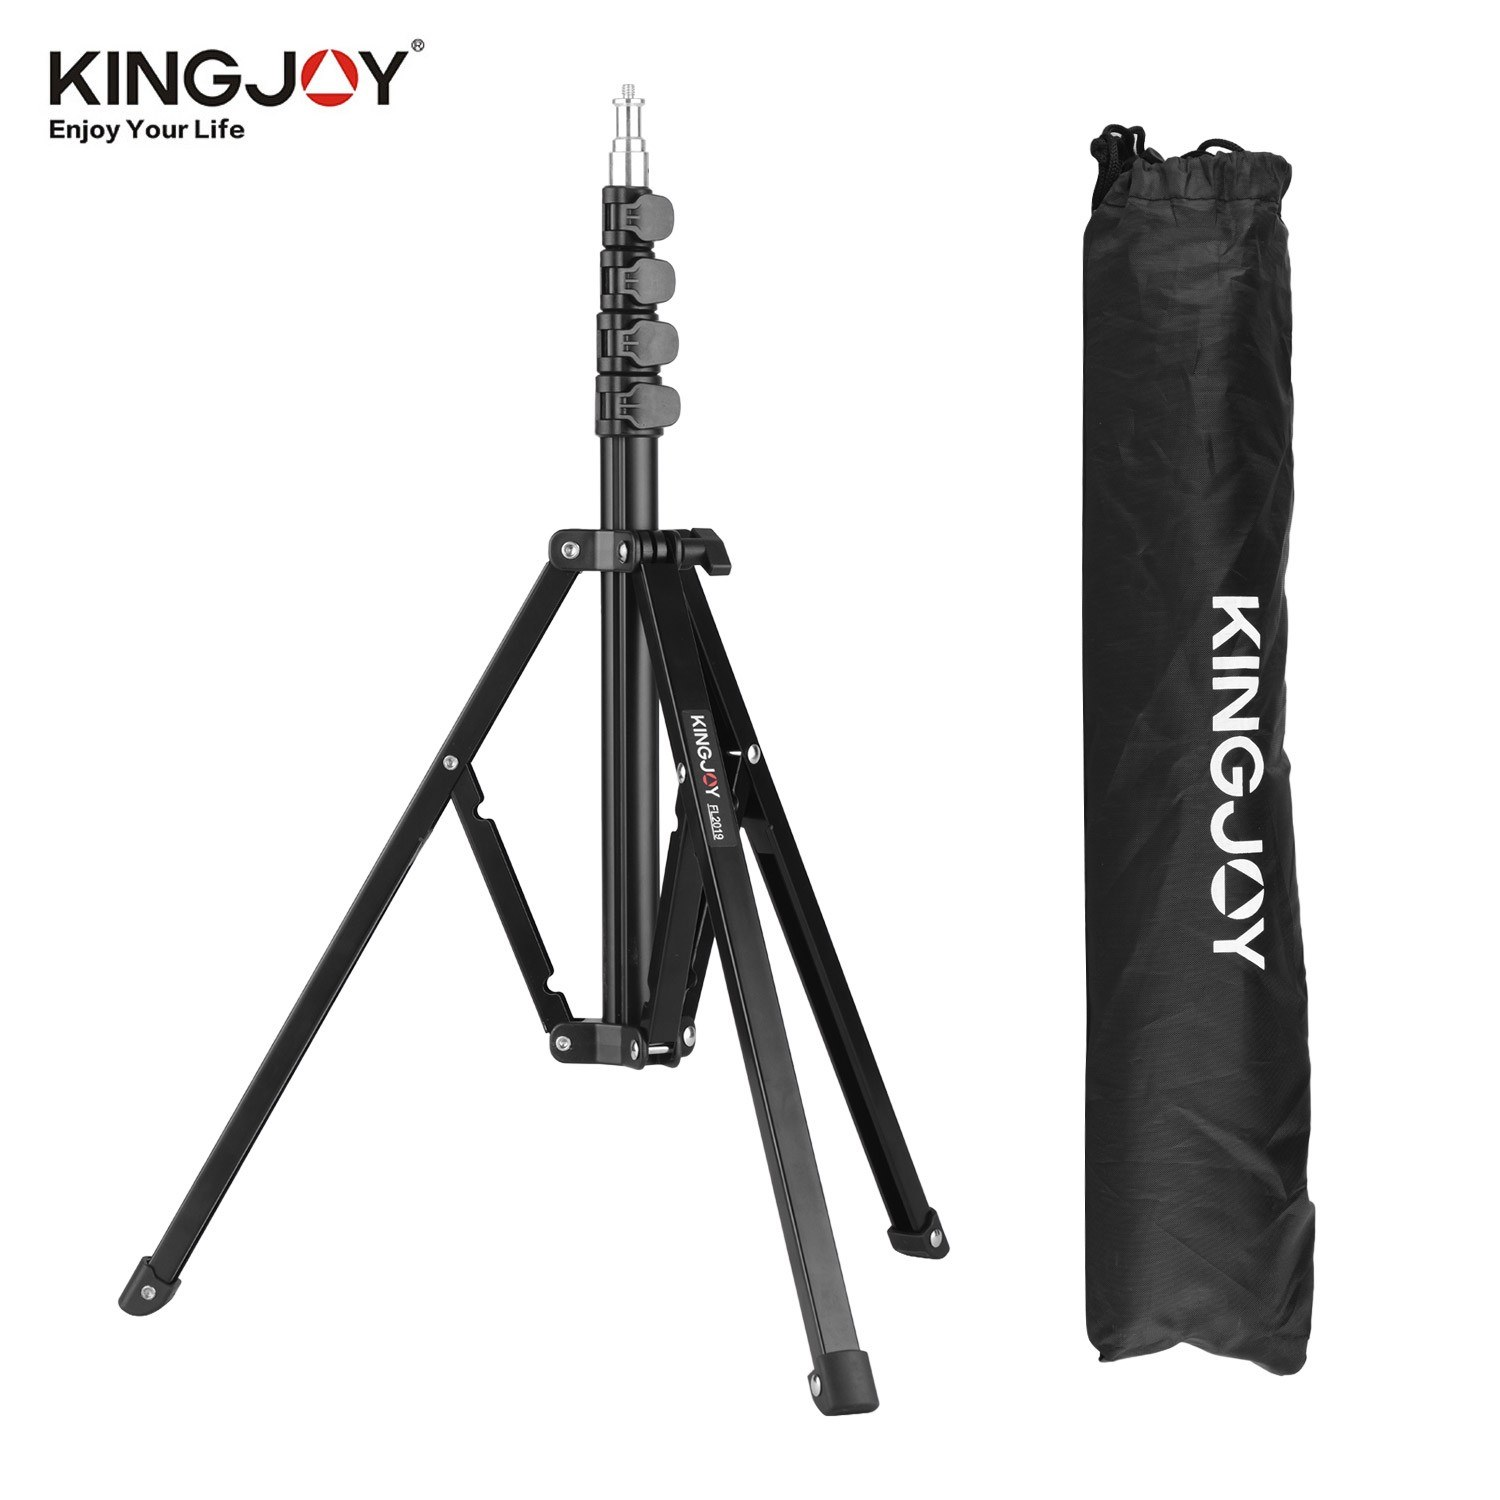 KINGJOY FL2019 Adjustable Metal Tripod Light Stand 8kg/17.6lbs Load Capacity 1/4 Inch Screw Max. Height 180cm/5.9ft with Carry Bag for Photography Studio Reflector Softbox LED Video Light Umbrella